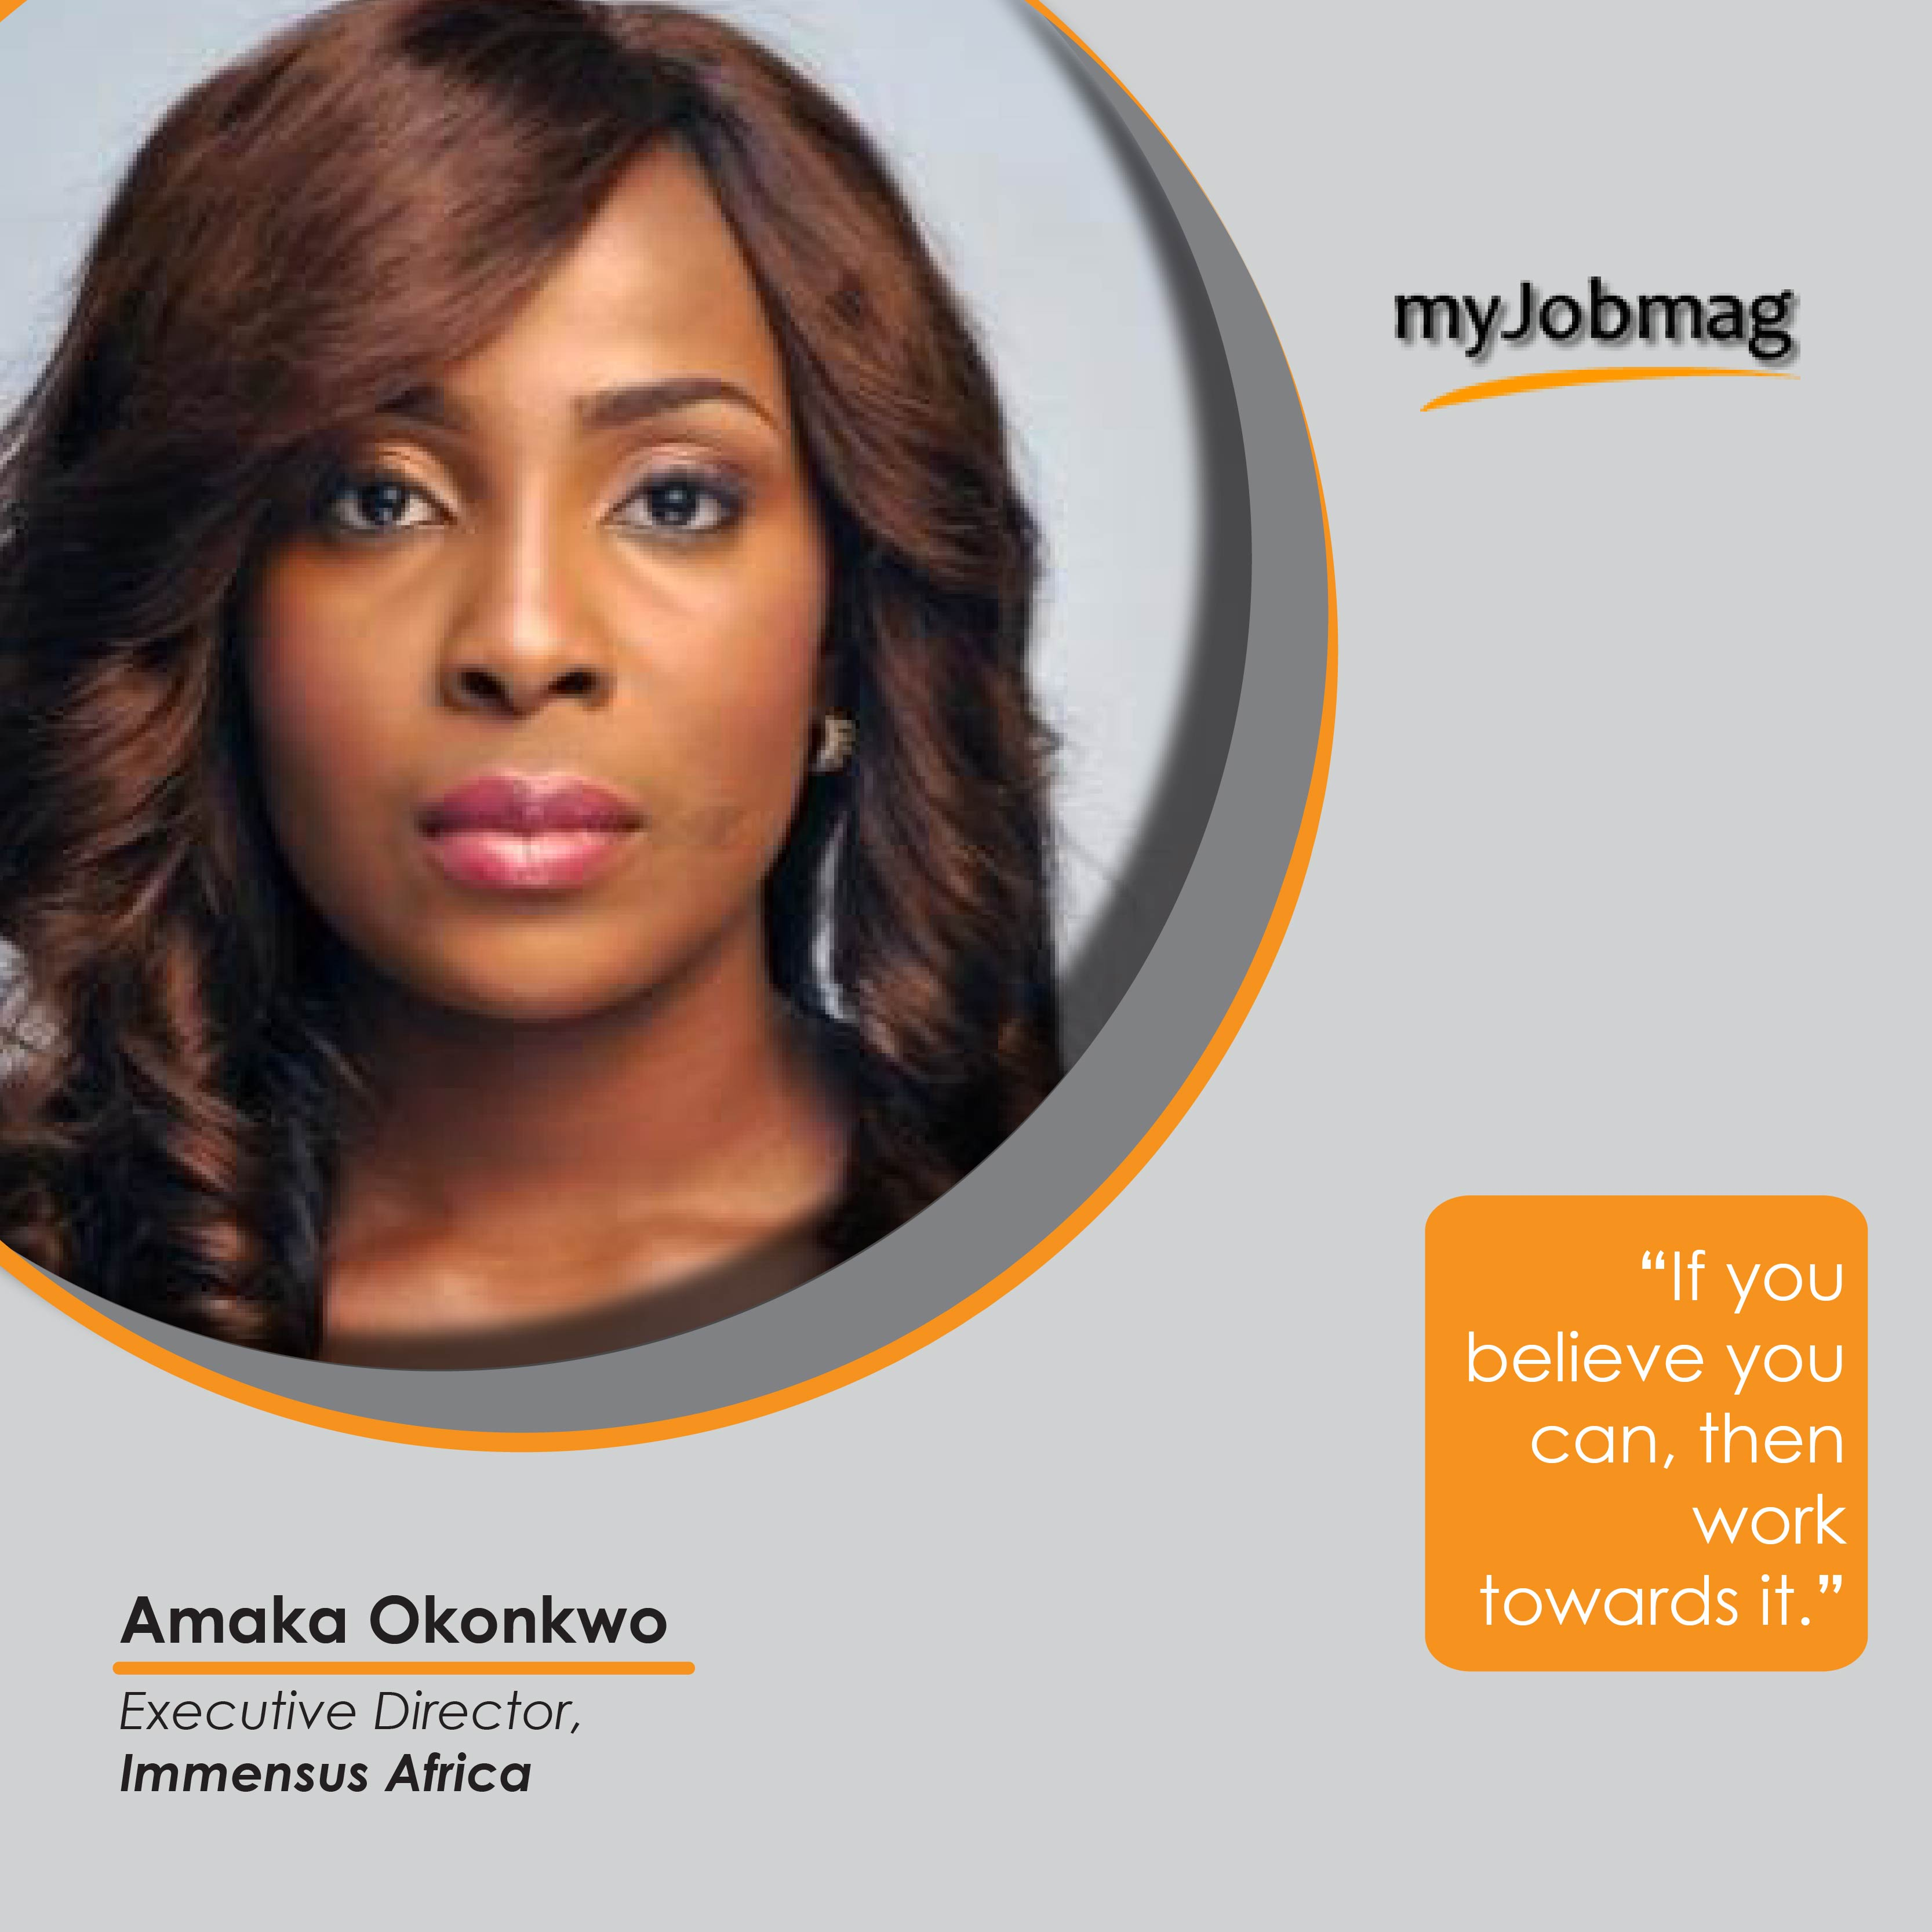 Amaka Okonkwo career advice MyJobMag